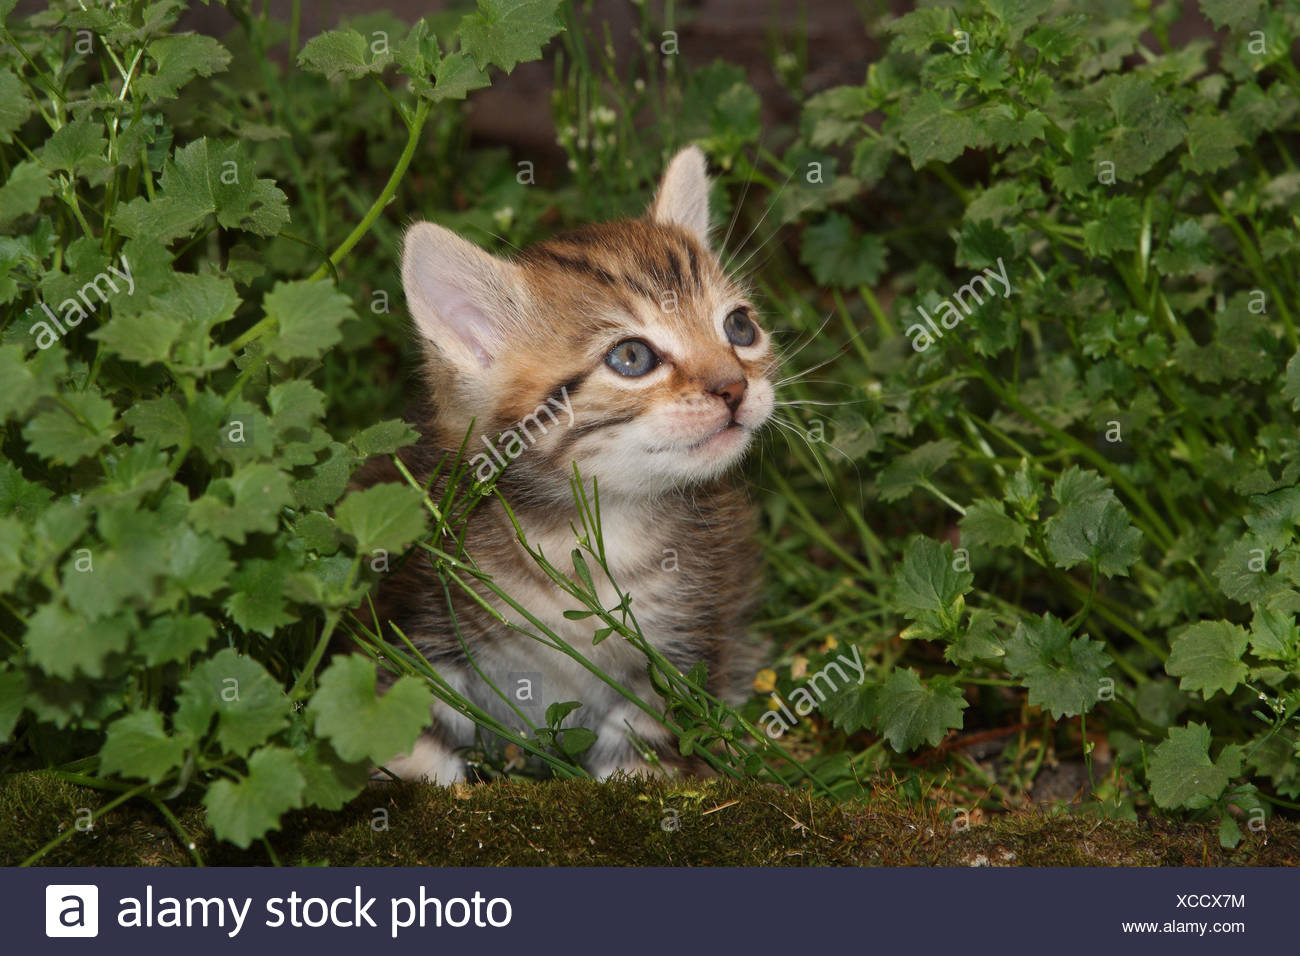 Cat, young, sit, meadow, garden, animals, mammals, pets, small cats, Felidae, domesticates, house cat, young animal, kitten, small, awkward, clumsy, helplessly, sweetly, hide, play, curiosity, striped, hervorschauen, plants, individually, only, young animals, animal baby, nature, outside, - Stock Image